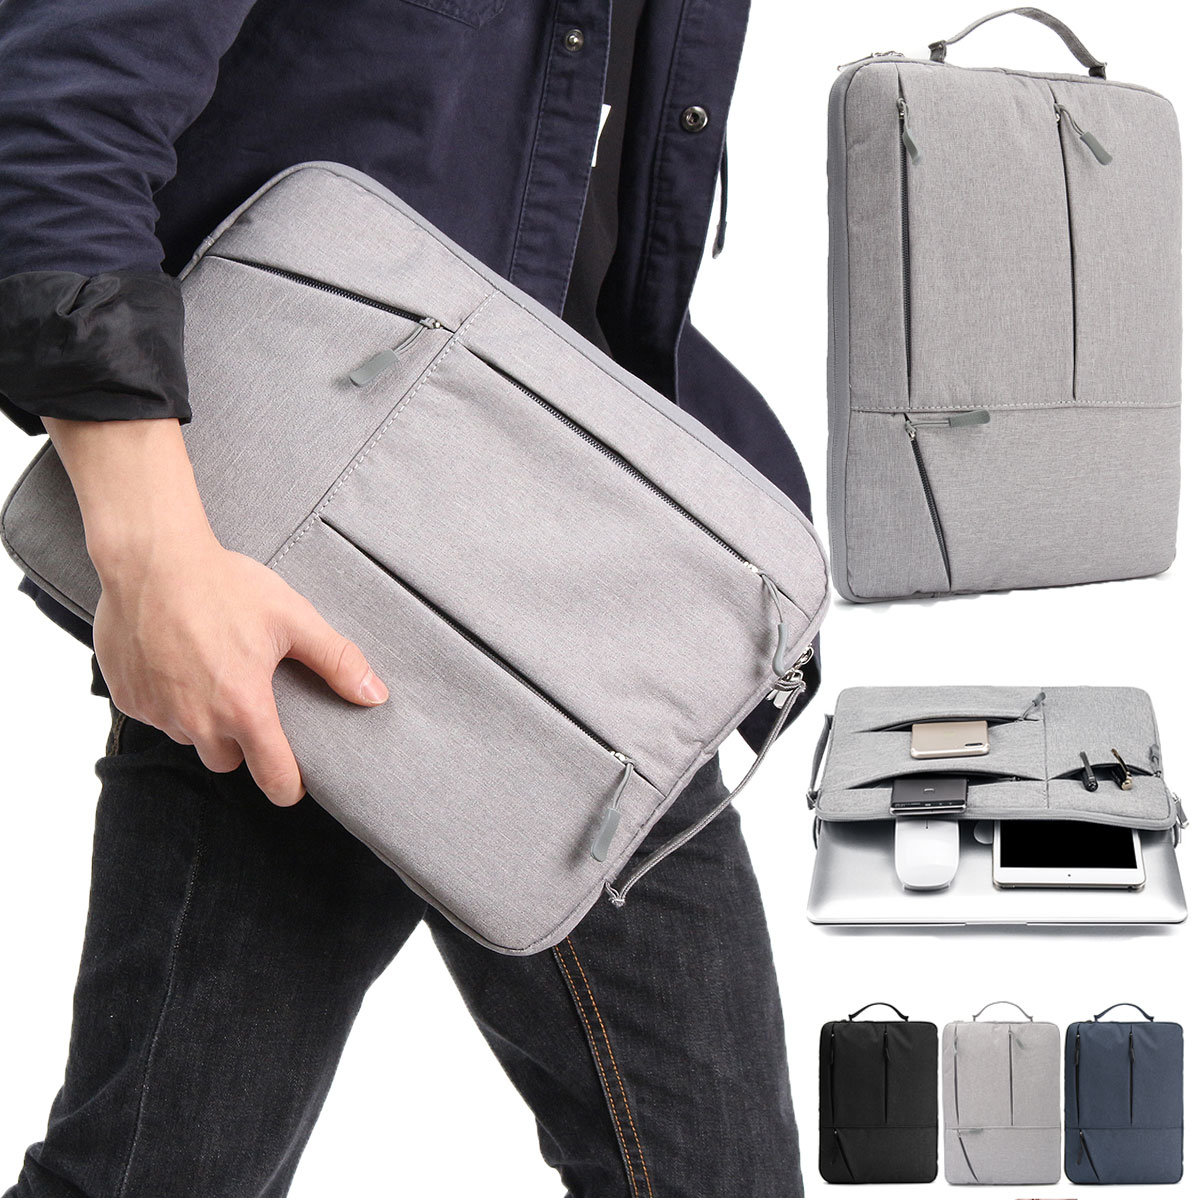 WALLET 13 Inch Portable Laptop Sleeve - Grey